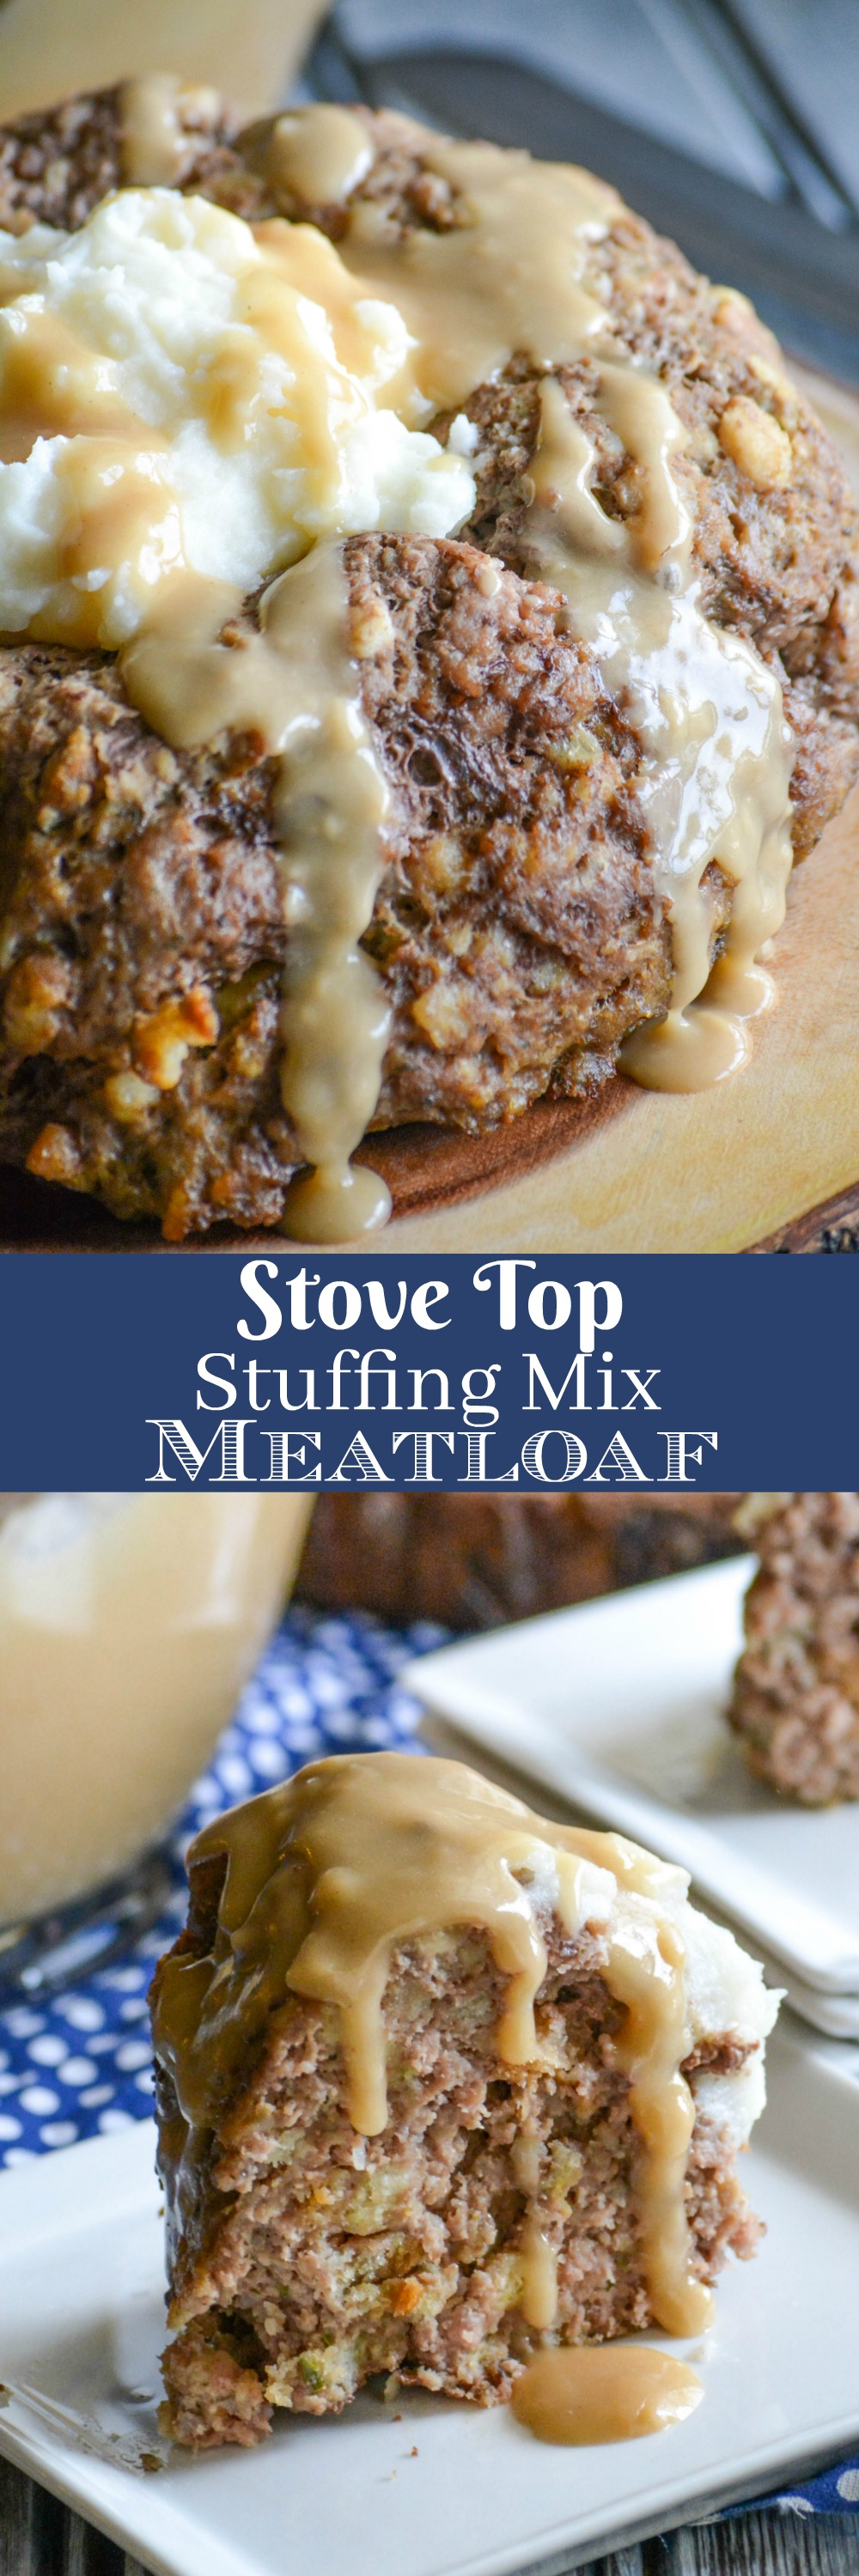 An easy meatloaf with a simple ingredient list, this Stove Top Stuffing Mix Meatloaf is the perfect dinner for busy nights. Served with creamy mashed potatoes and rich gravy, your family will never guess your secret to such a cozy meal.